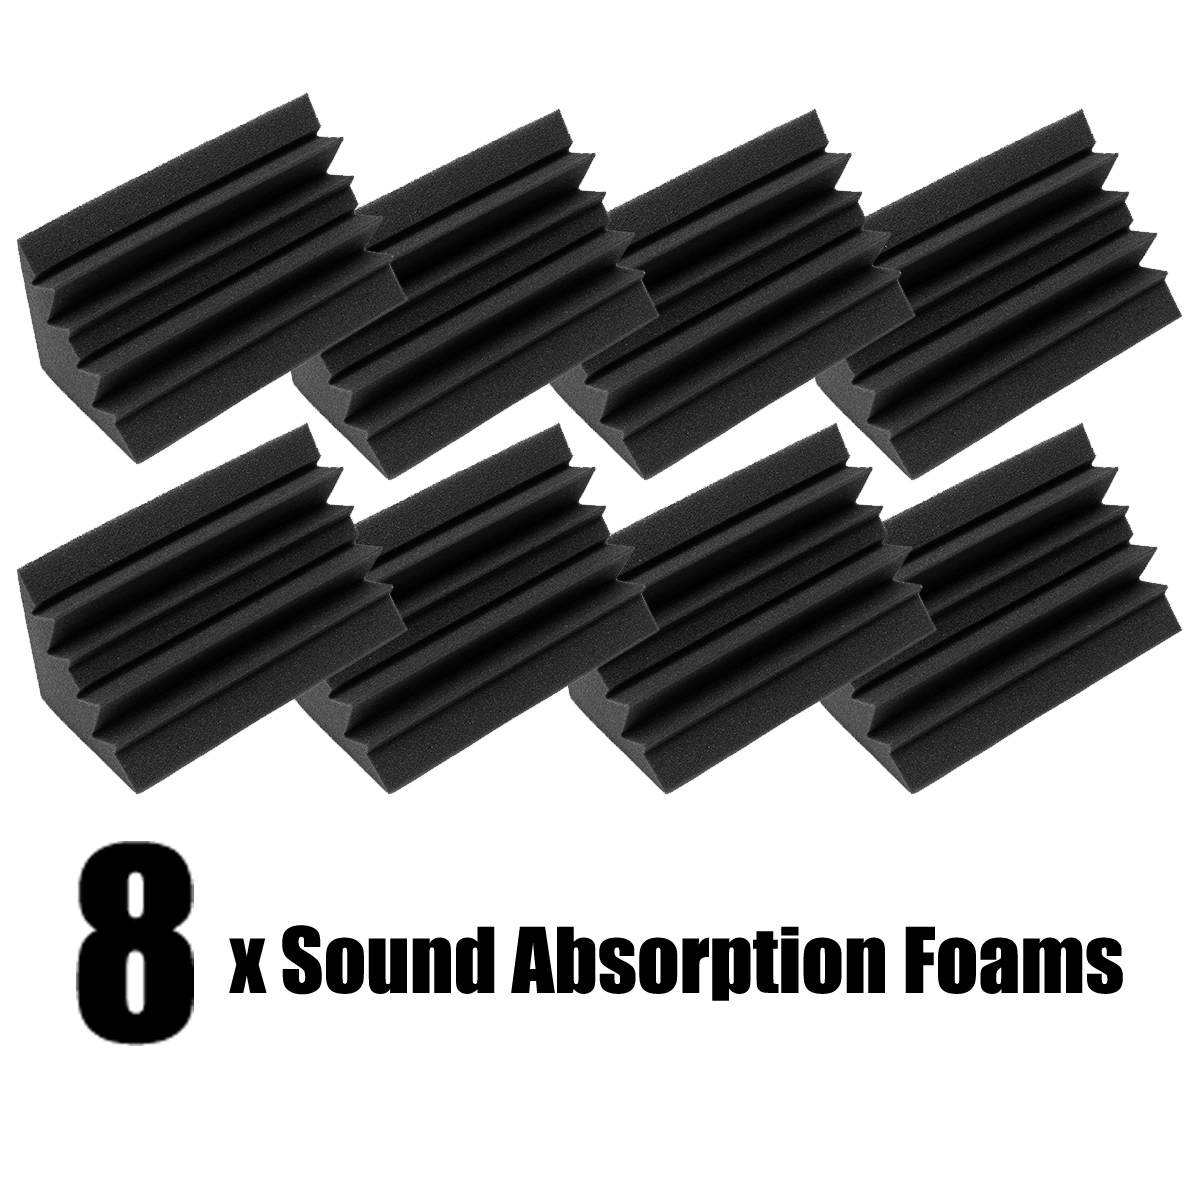 8Pcs 12x11x24cm Soundproofing Foam Acoustic Foam Noise Sound Treatment Studio Room Absorption Wedge Tiles Polyurethane Foam